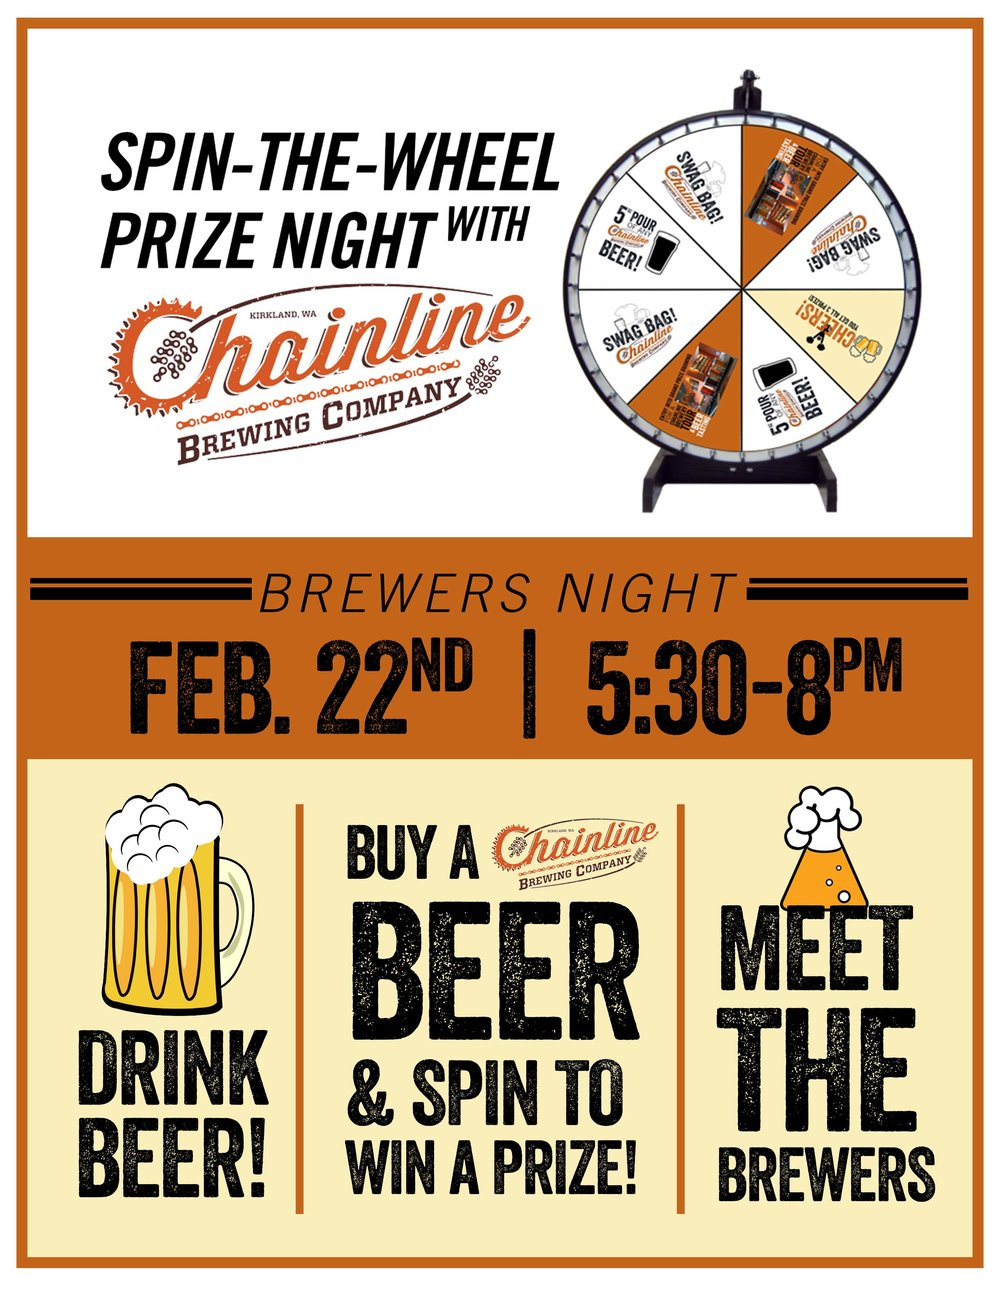 Chainline Brewing is back...this time with a prize wheel and more tasty beer, of course!  Order a Chainline Beer AND you get to spin the bike wheel to win prizes!  Plus, meet the folks from Chainline, including Brewer Aaron and new Brewer Tom! They'll be bringing a few new beers and some of their staples. (Polaris & Tune Up anyone?)